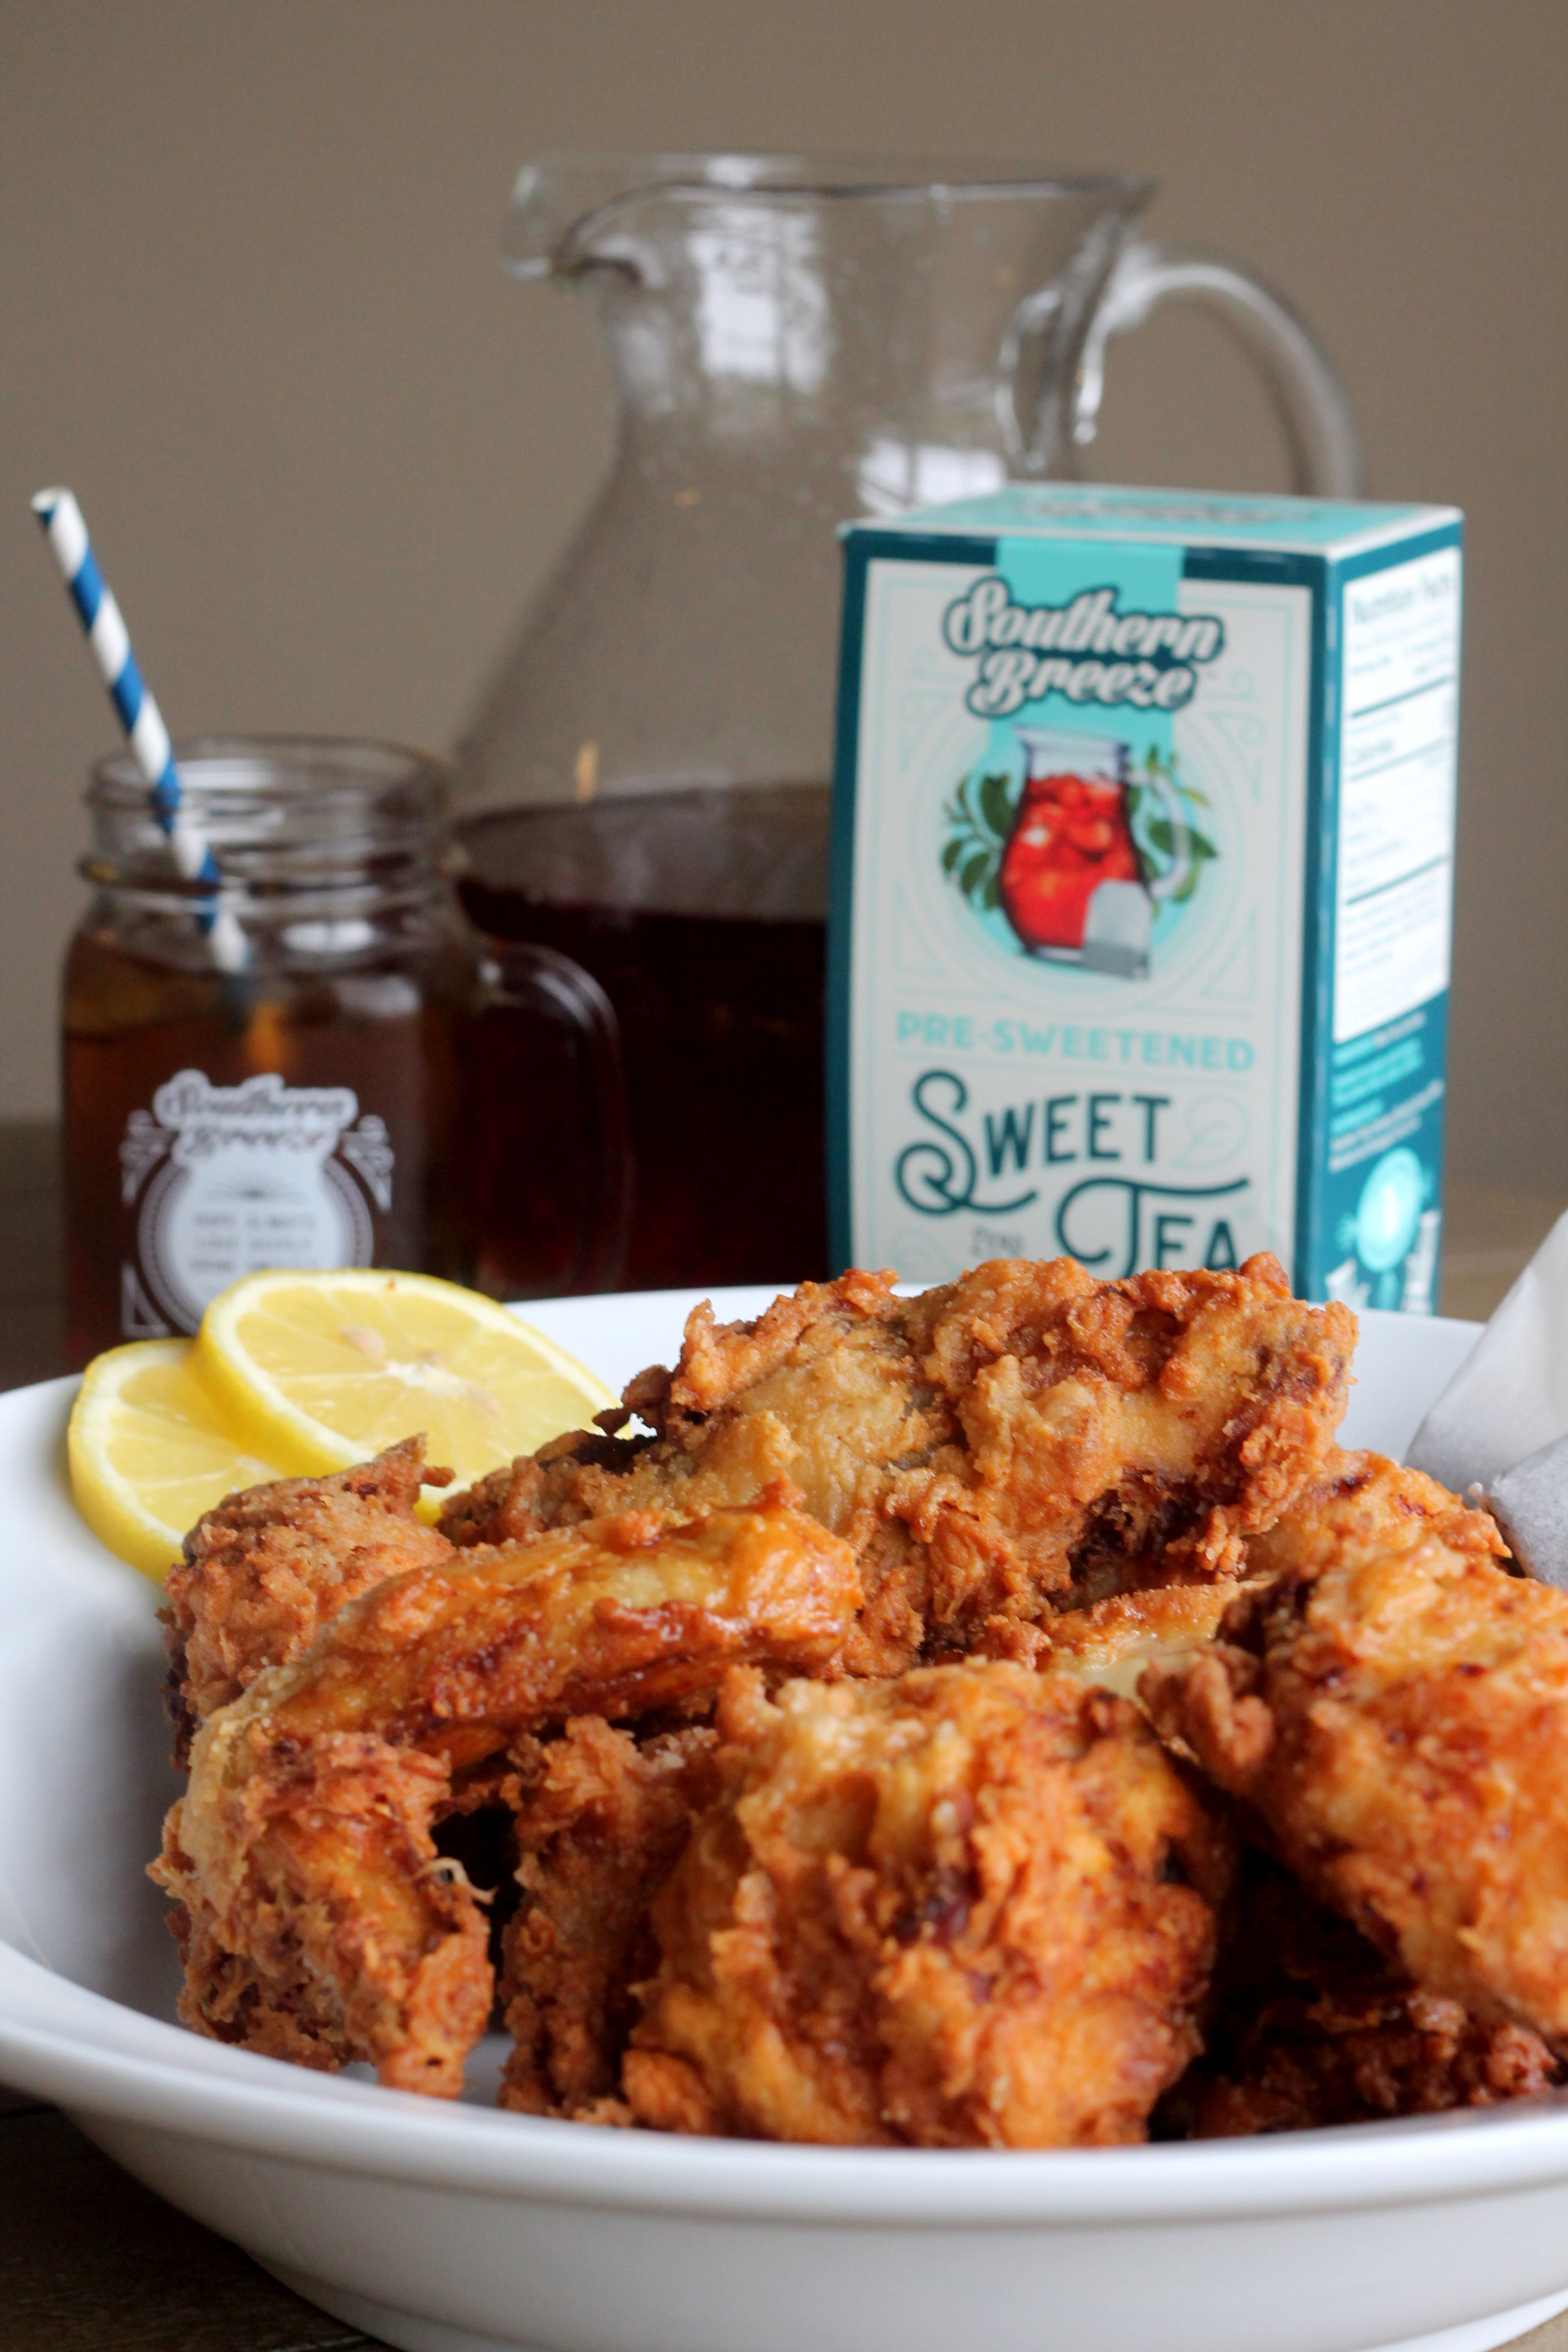 Nothing more Southern than sweet tea fried chicken and bourbon. So how about it all in one recipe?